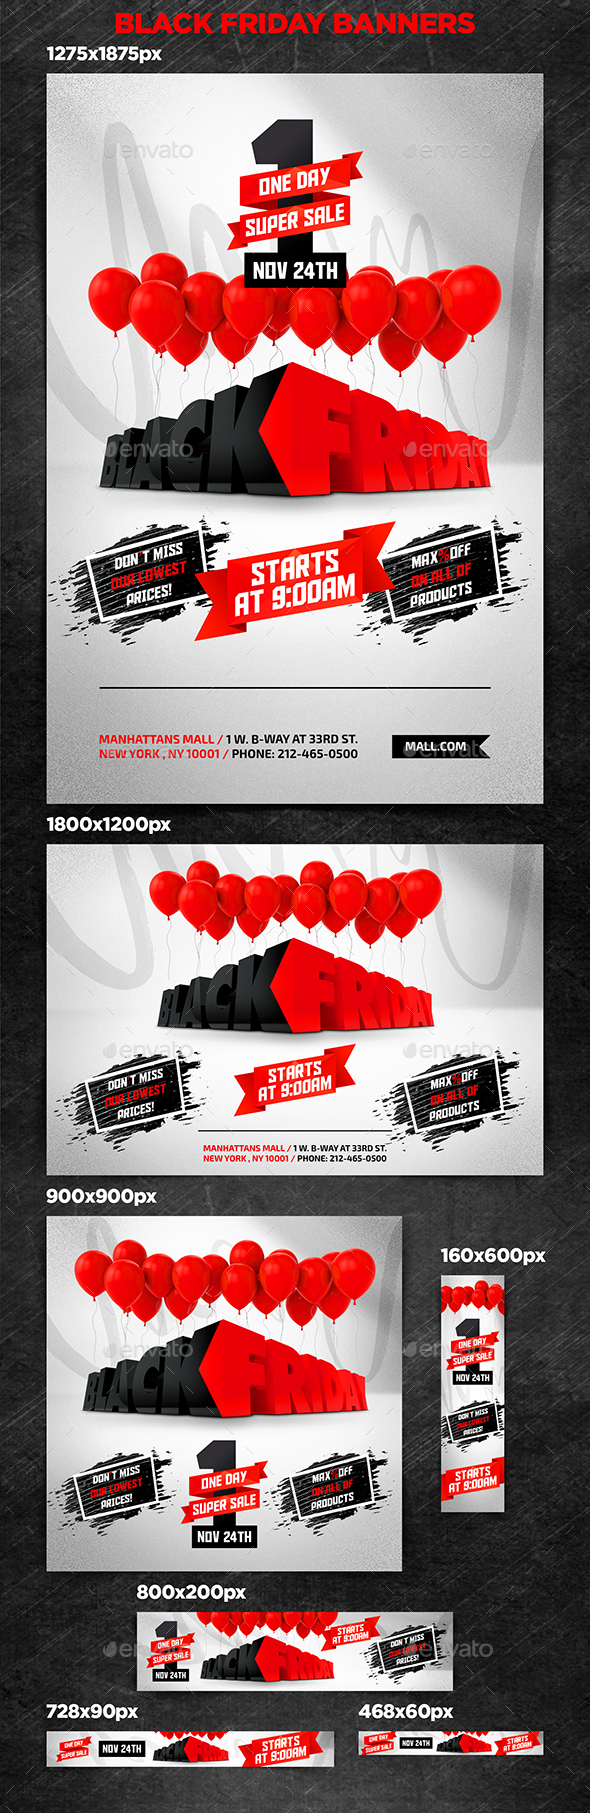 GraphicRiver Black Friday Banners 20876044